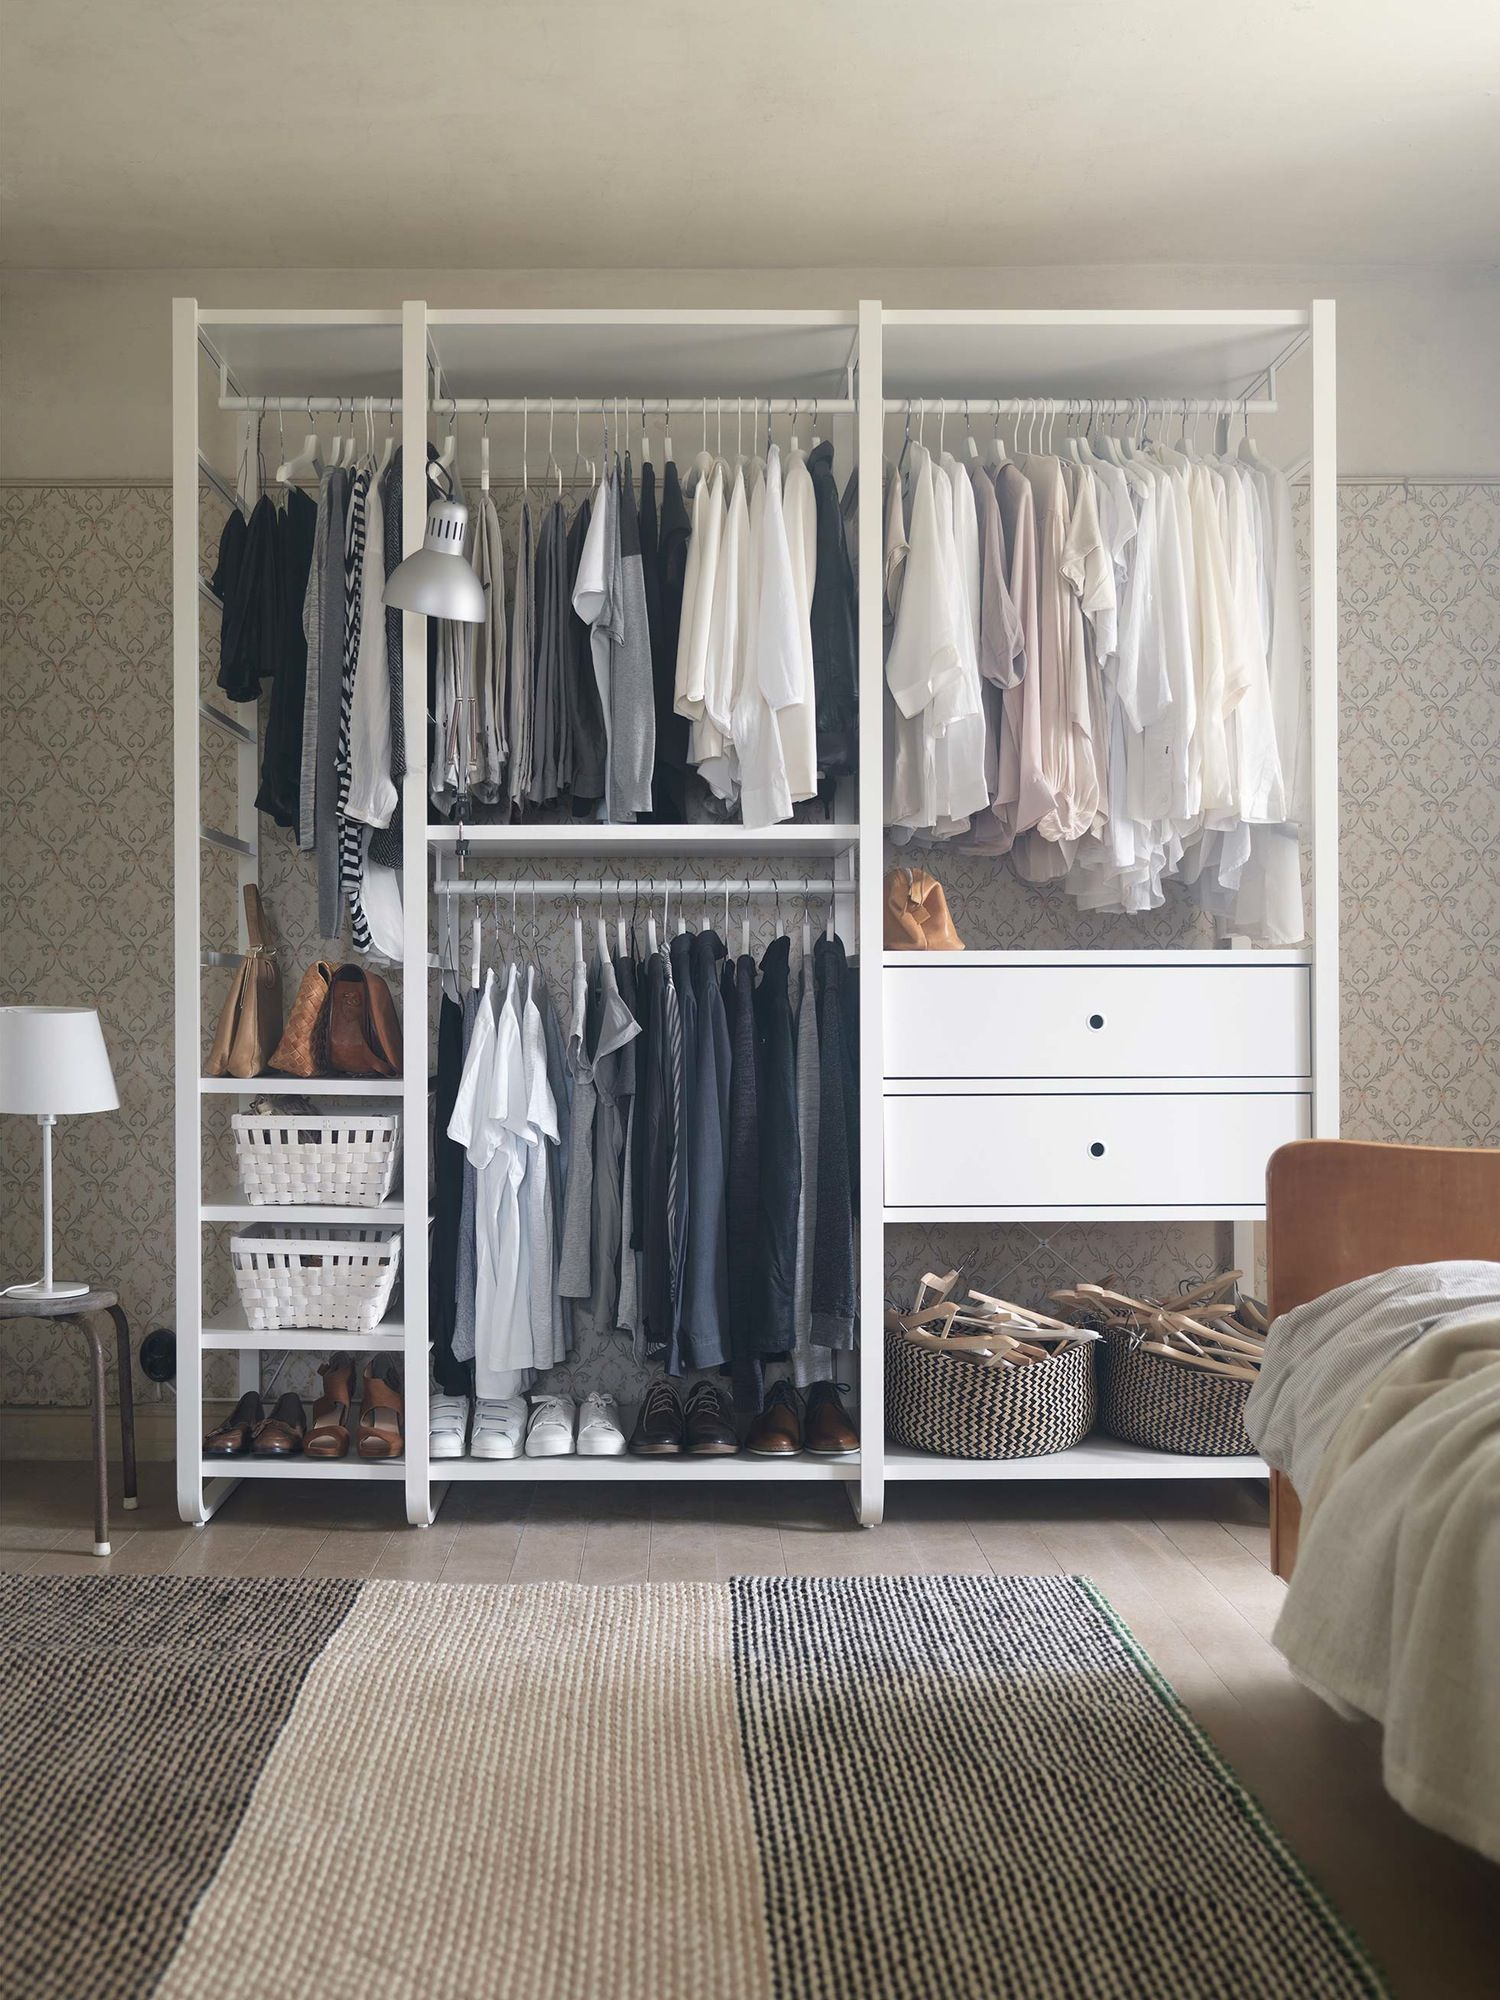 2 Elvarli Storage System Bedroom Storage Closet Design Ikea